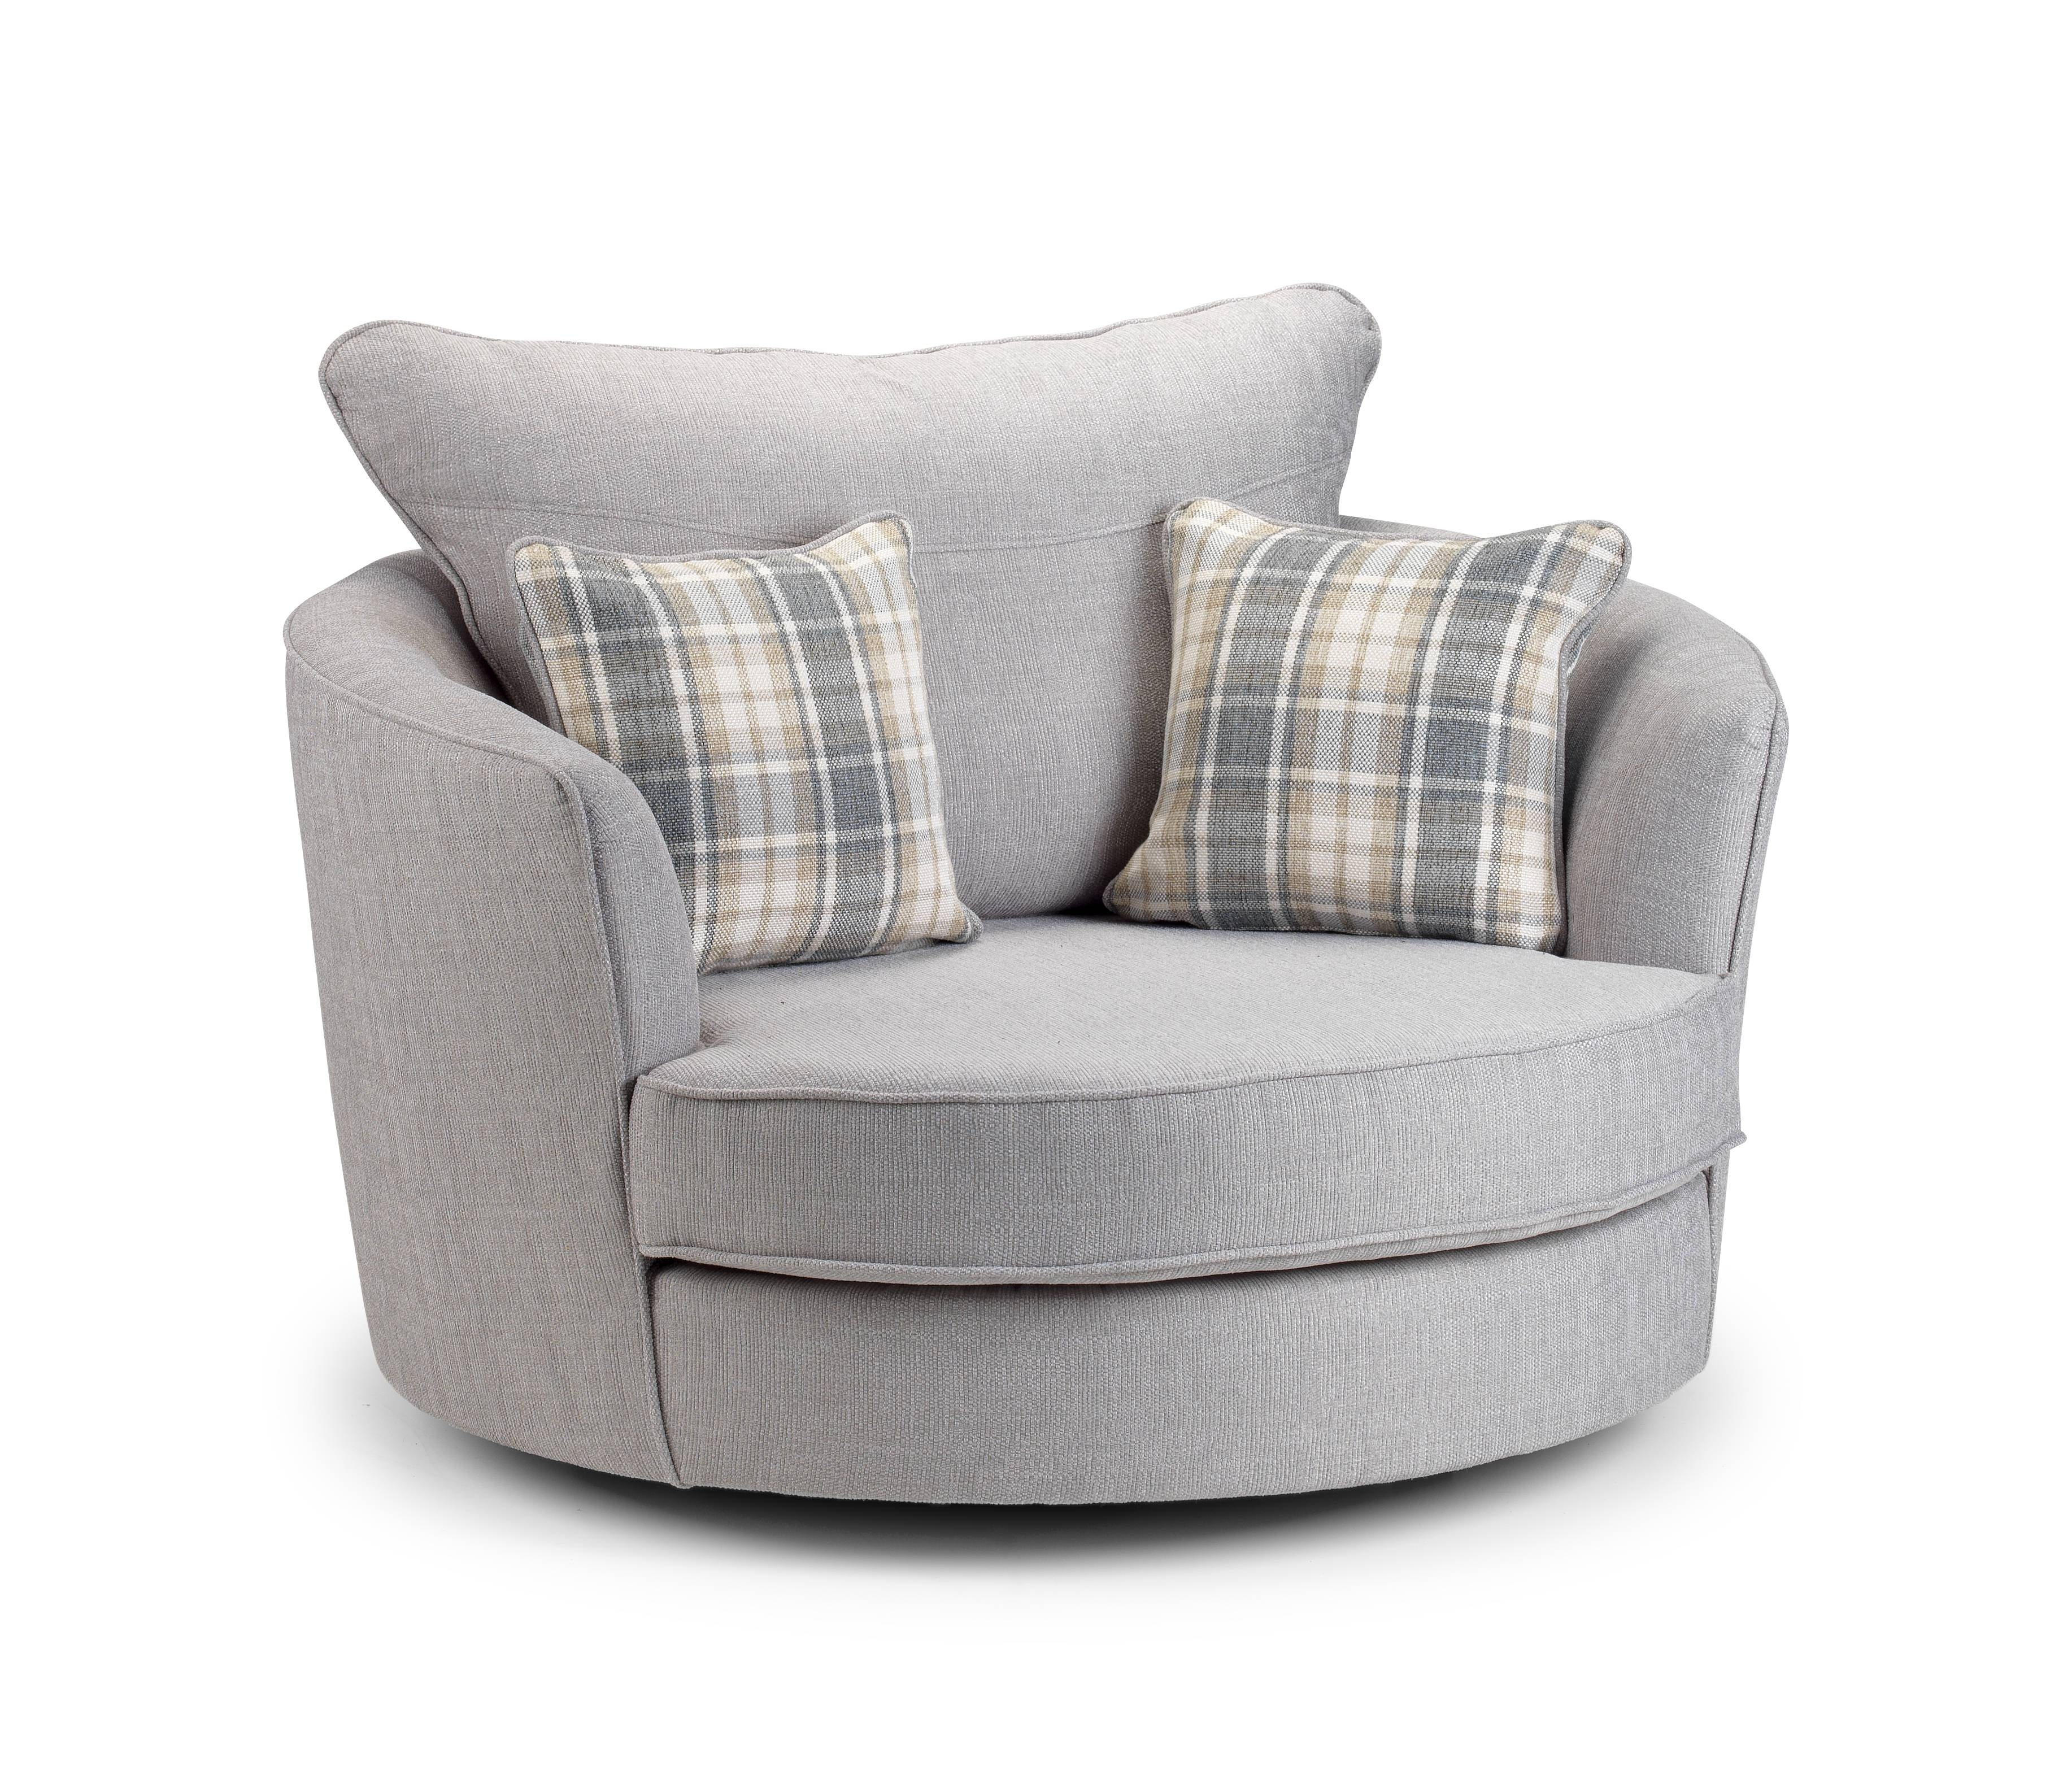 Round Sofa Chair within Swivel Sofa Chairs (Image 20 of 30)